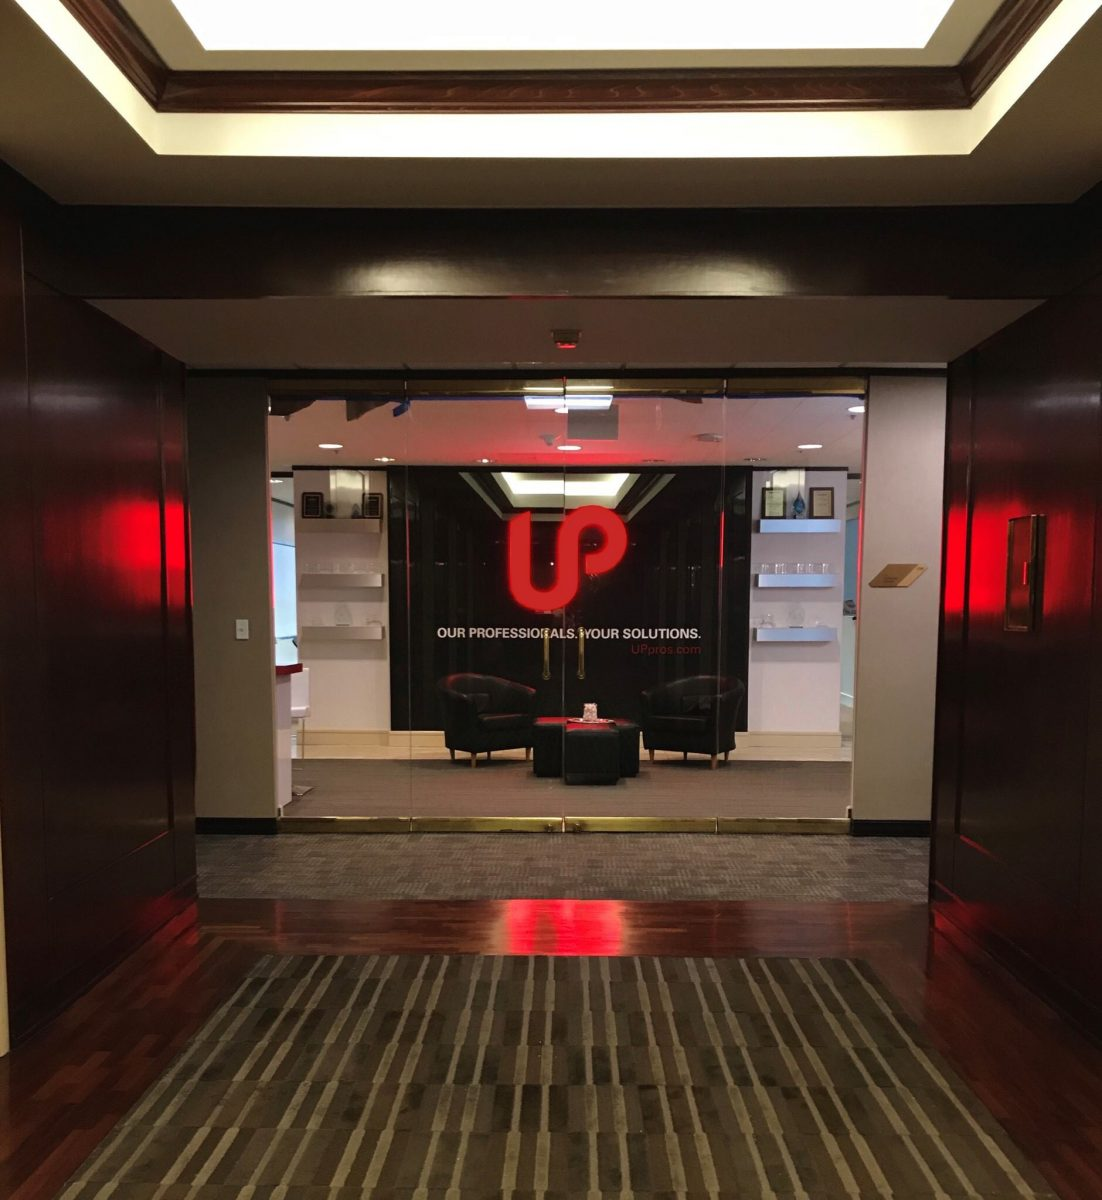 up professional solutions branded interior lobby